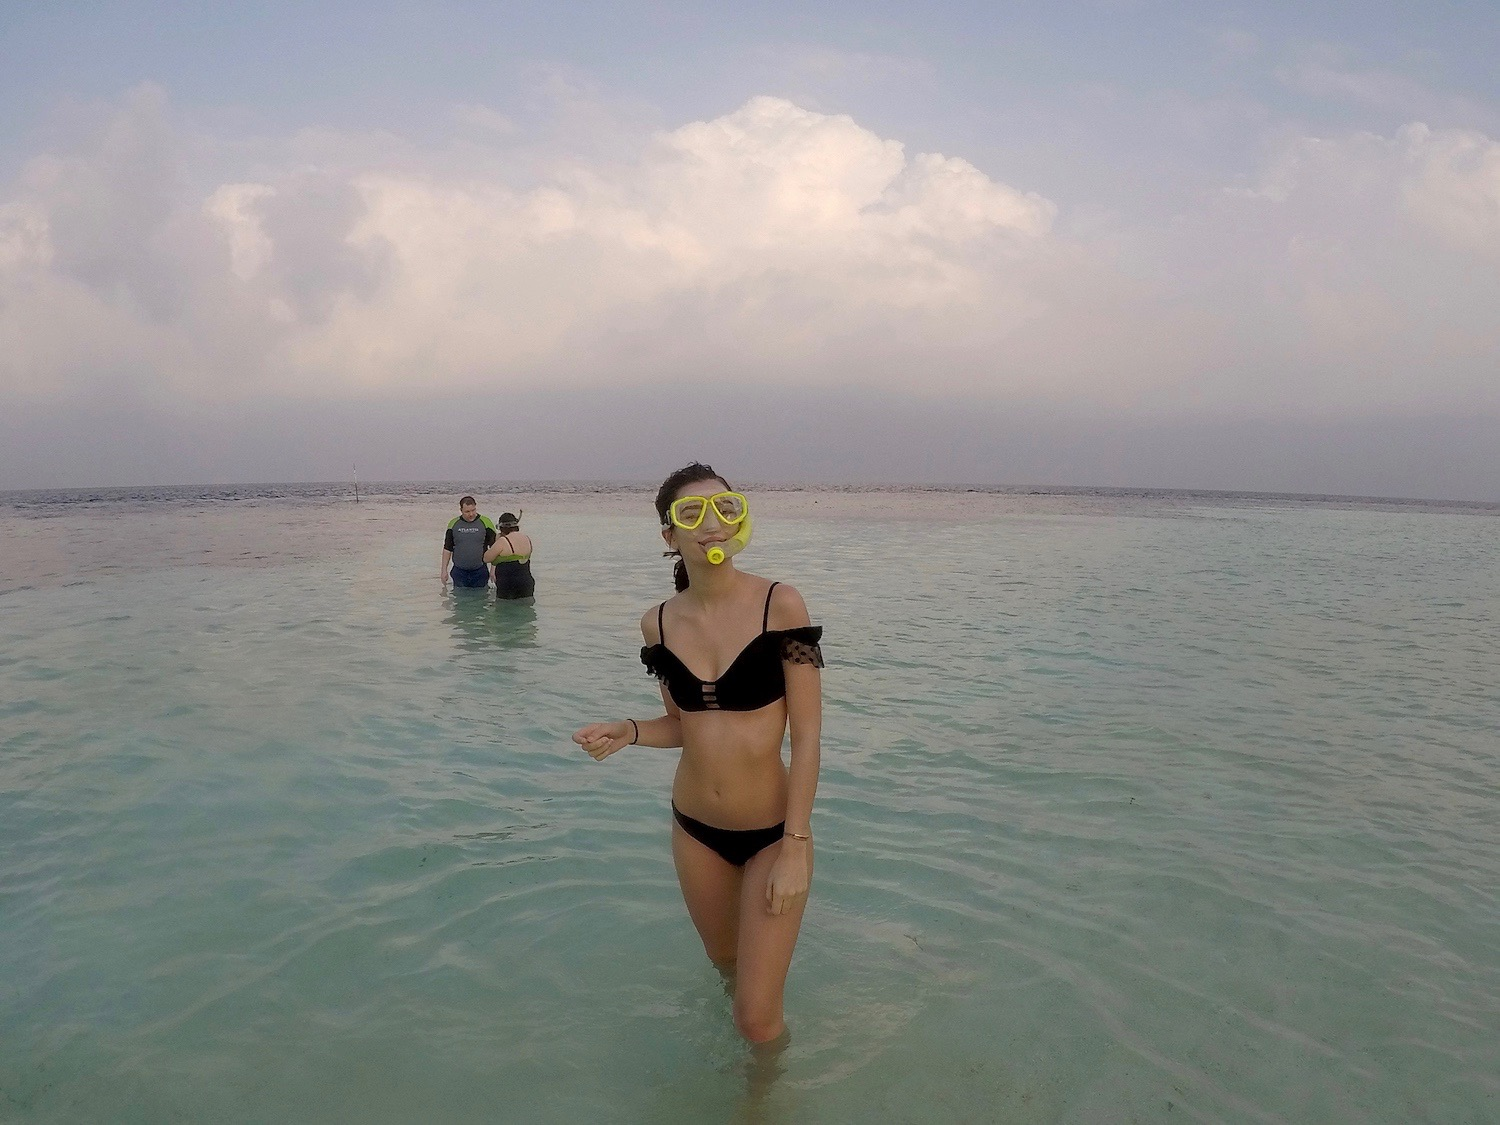 snorkelling peexo travel blogger